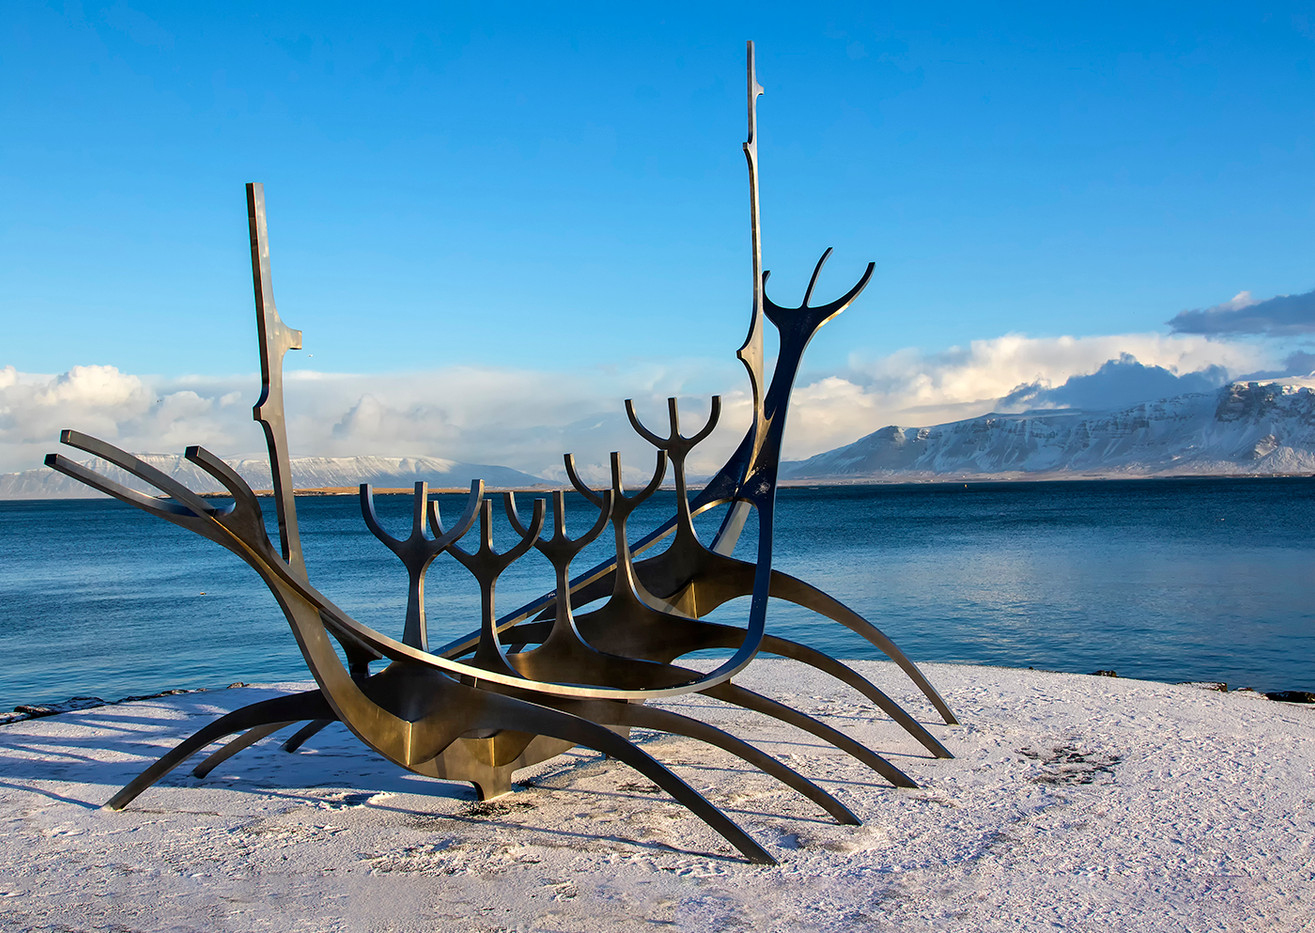 18 SUN VOYAGER by Glenn Welch